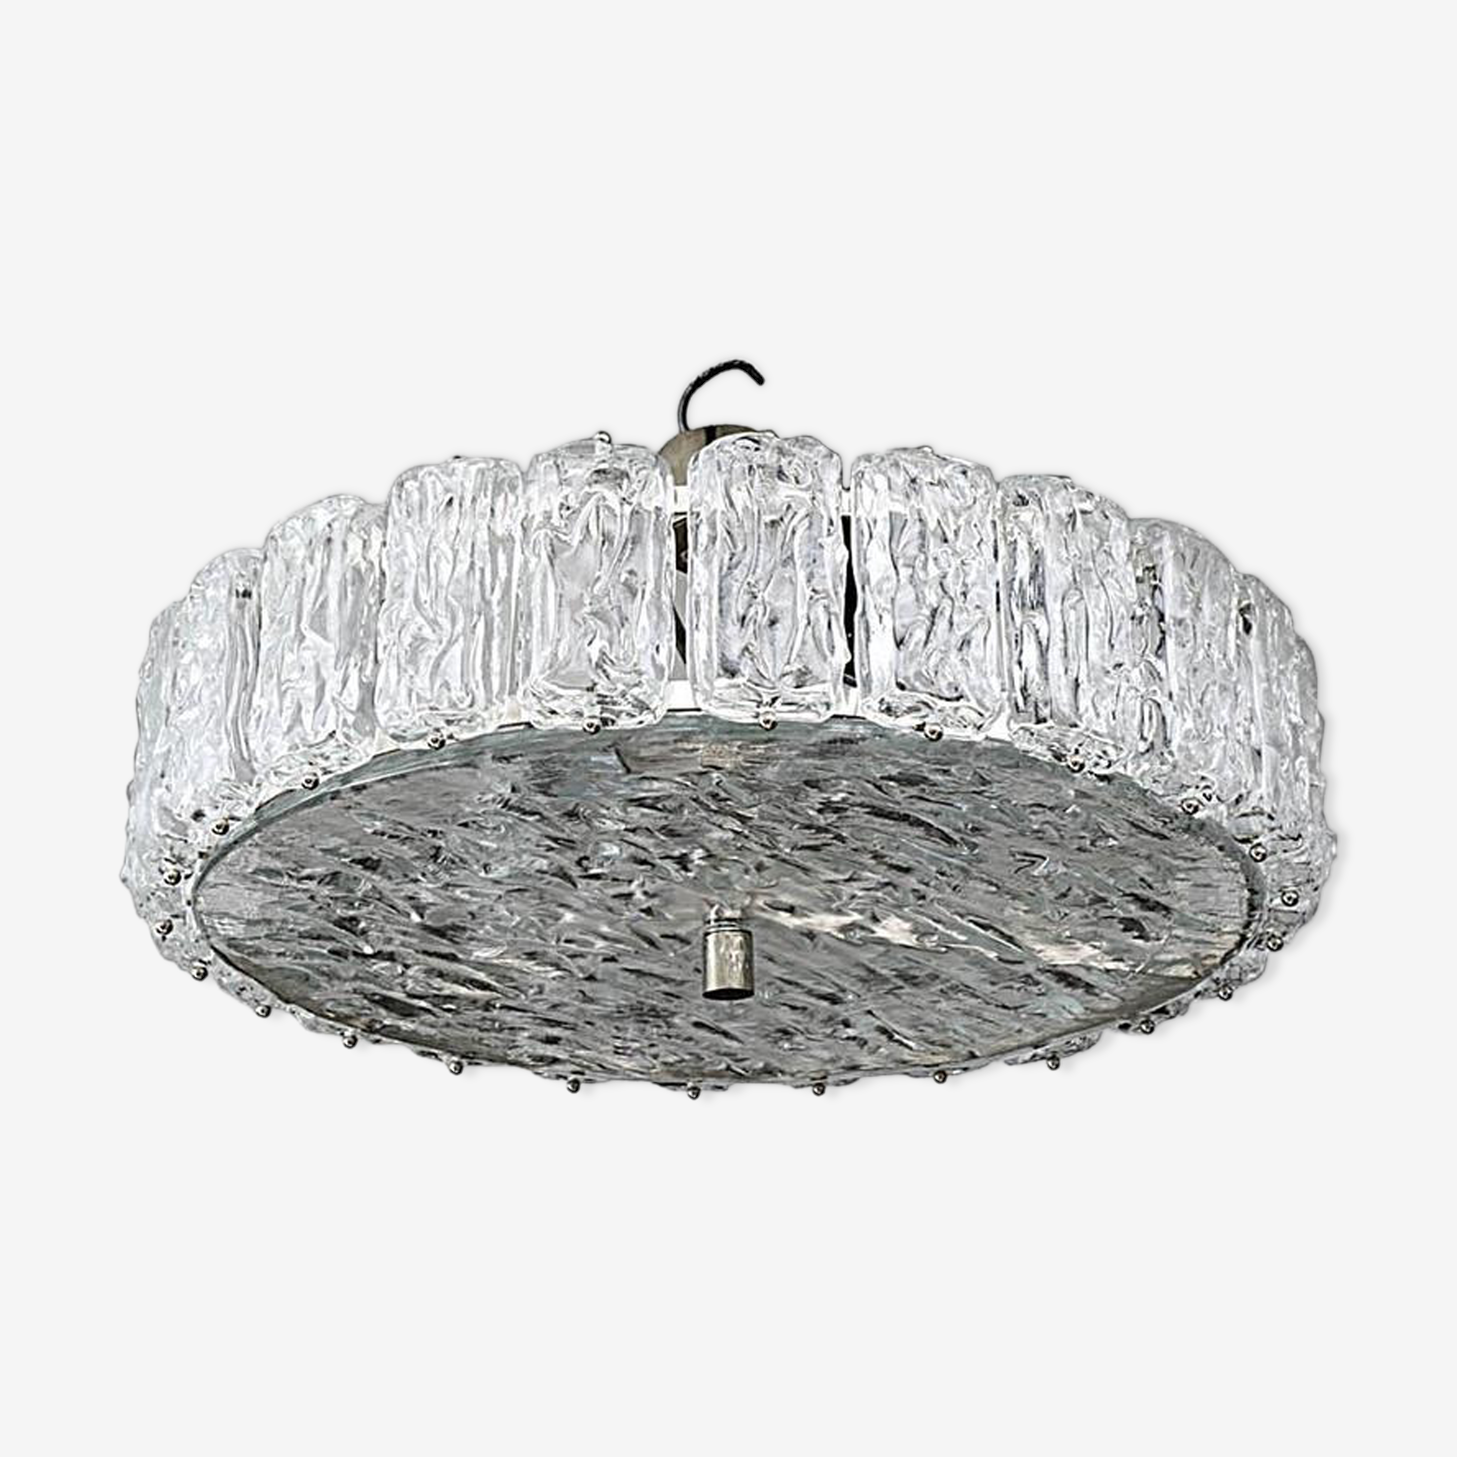 Frosted in Murano glass chandelier